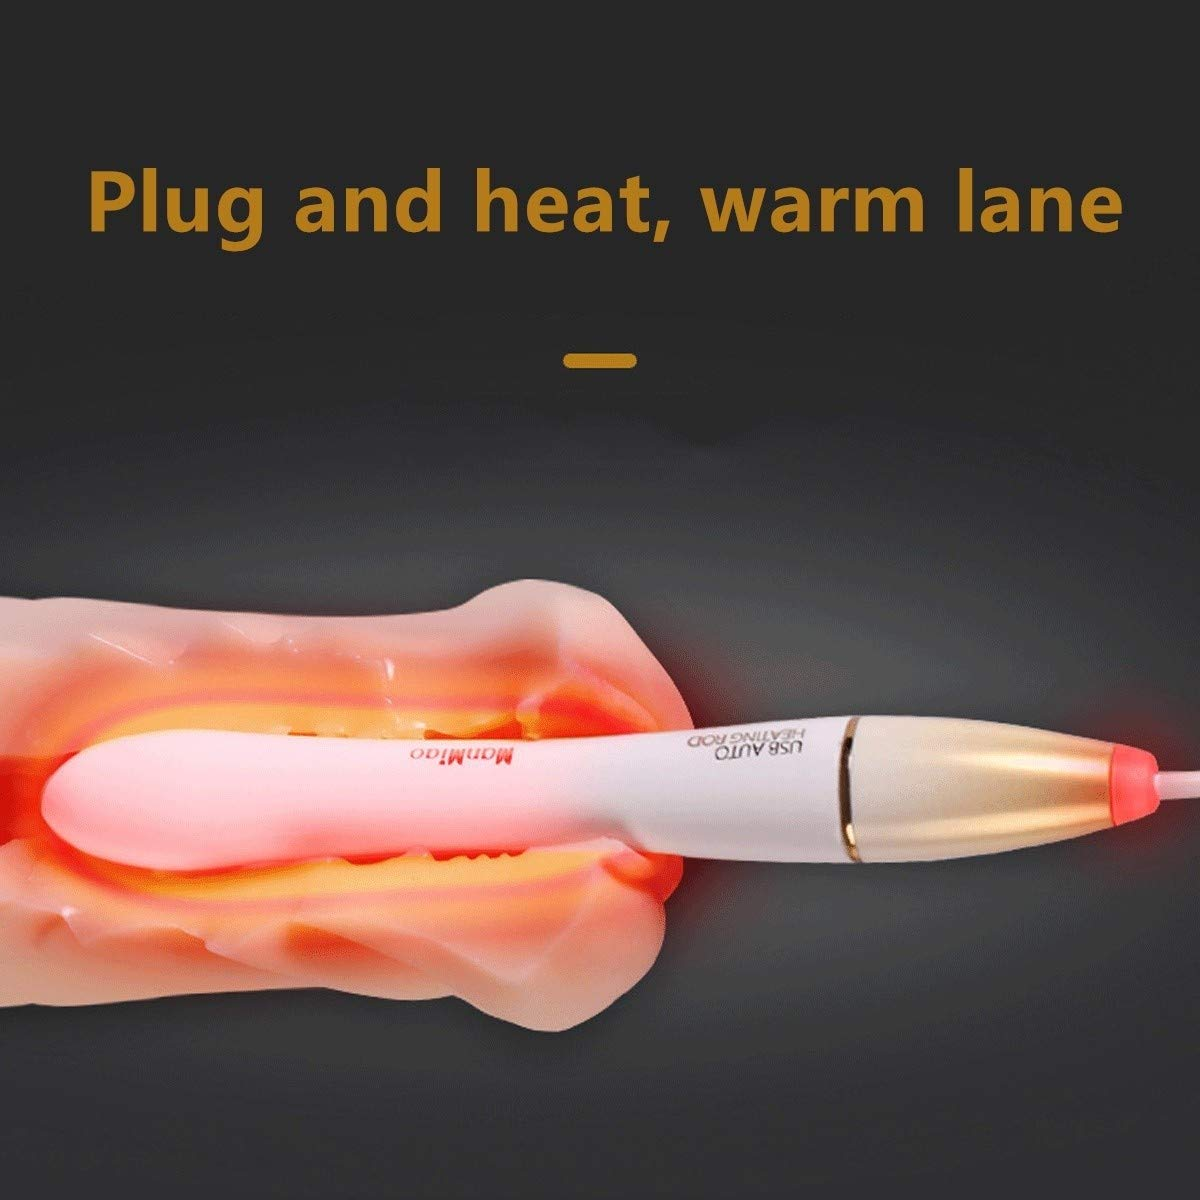 BAMBOSYT 2 in 1 USB Heating Rod Charging Simulation Adult Pink Body Temperature (Intelligent Thermostat 37.5 Degrees Celsius),for Adult Toy,Waterproof, Suitable for Beginners BAMBOSYT